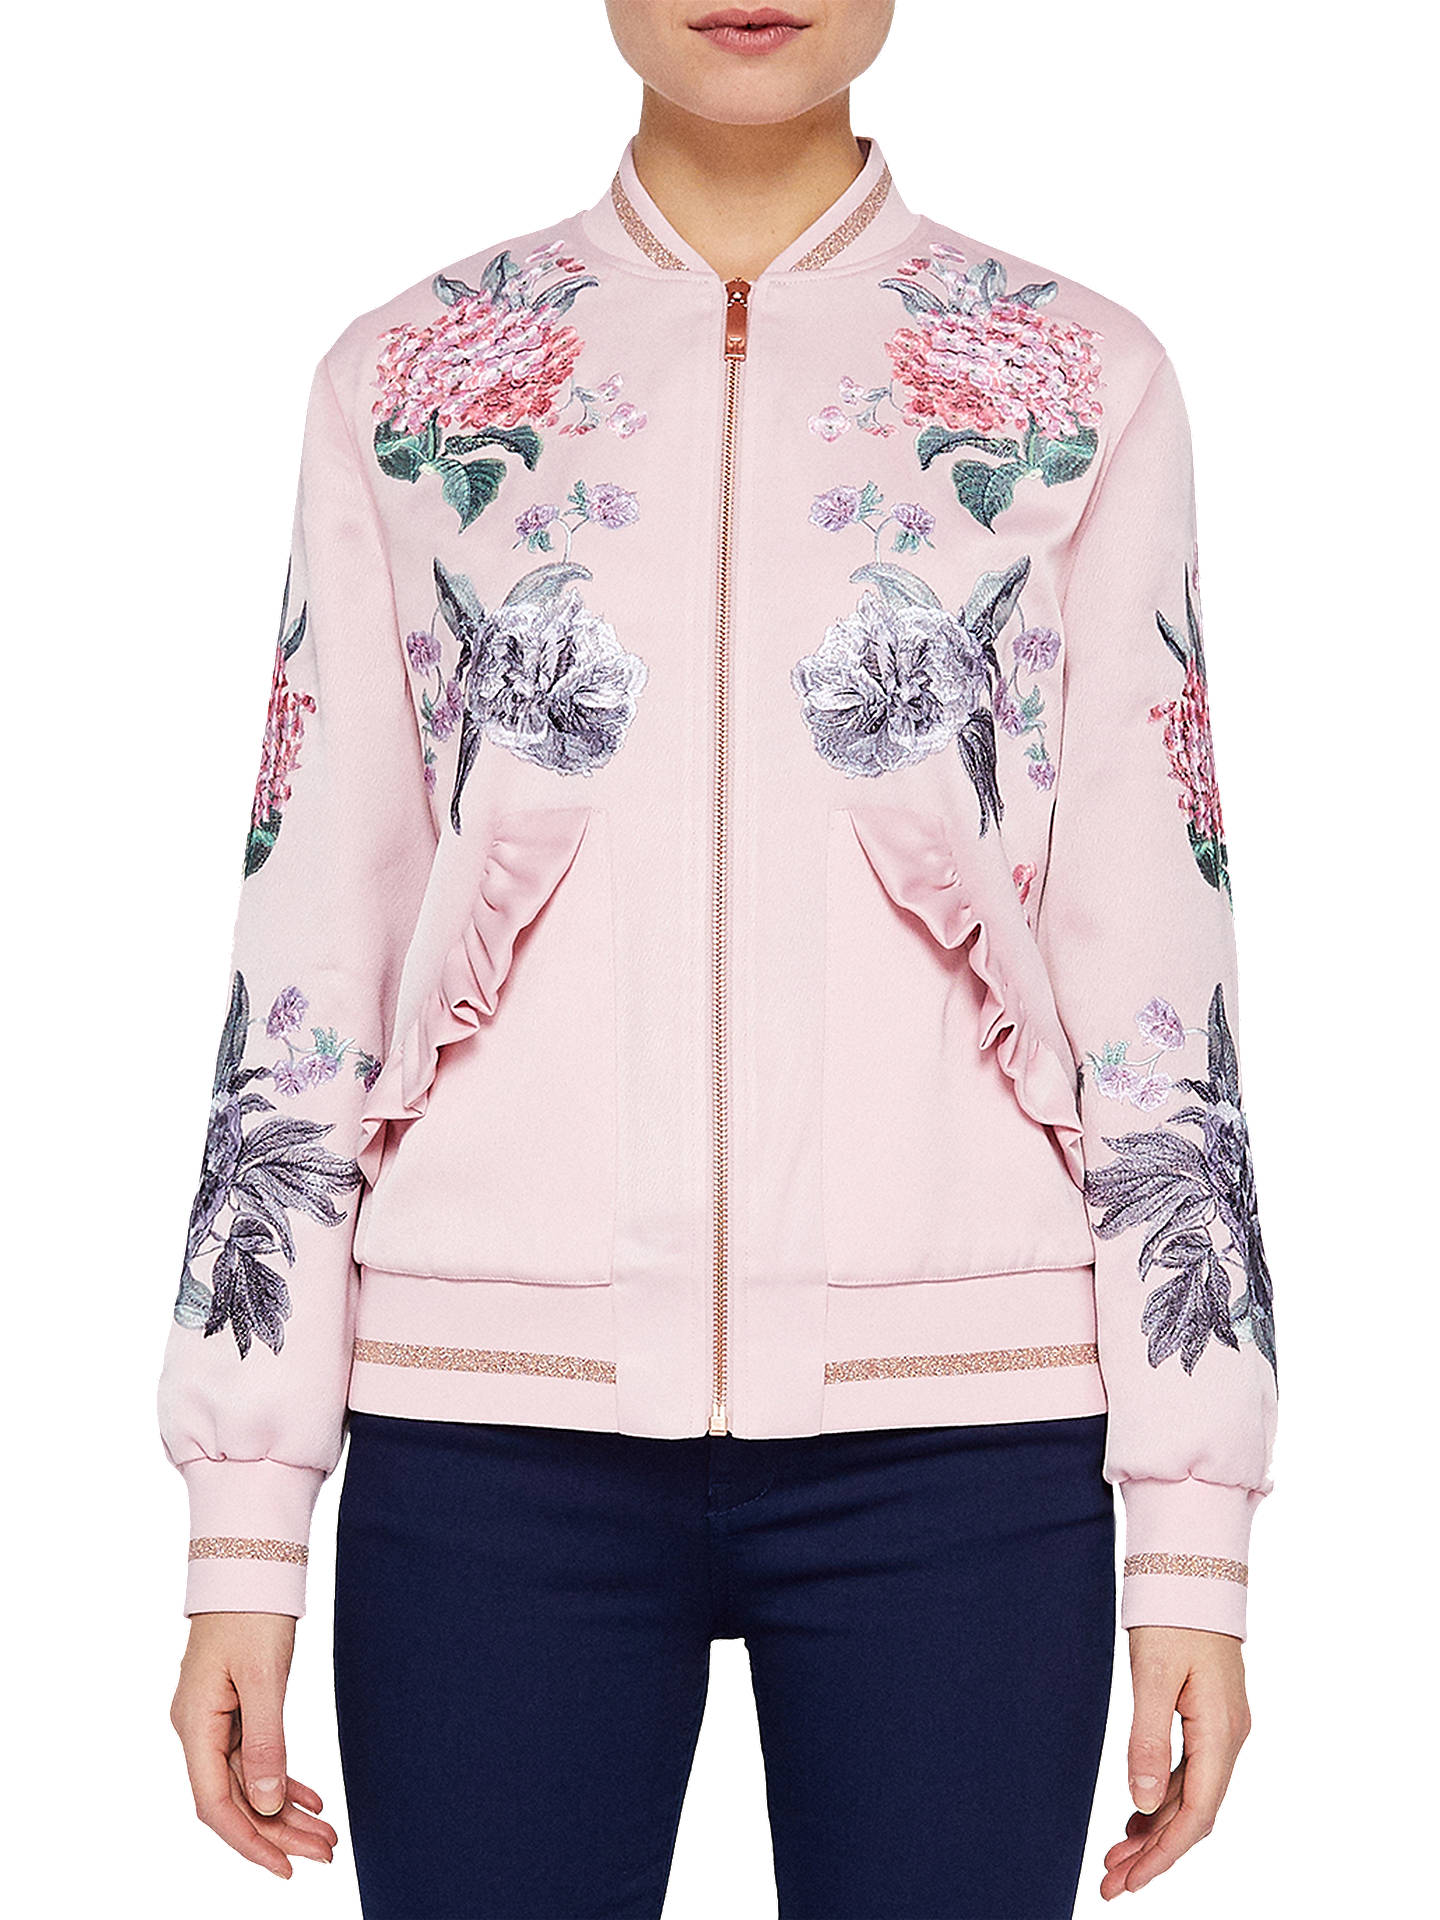 68d54b258 Ted Baker Allisza Palace Gardens Ruffle Trim Bomber Jacket, Dusty ...